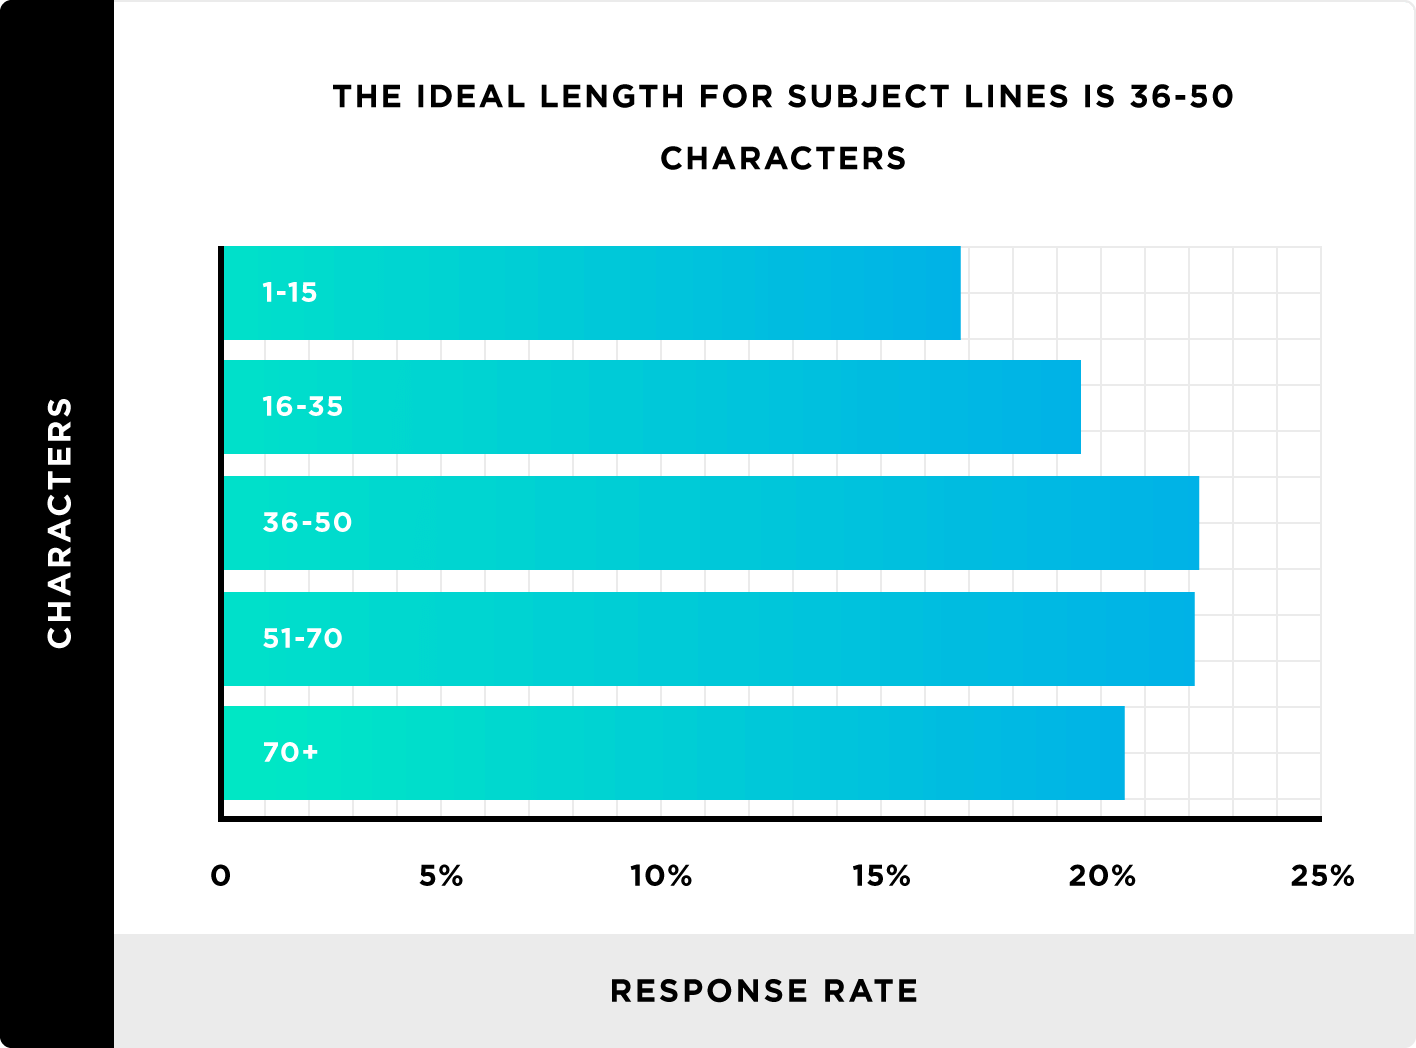 The ideal length for subject lines is 36-50 characters